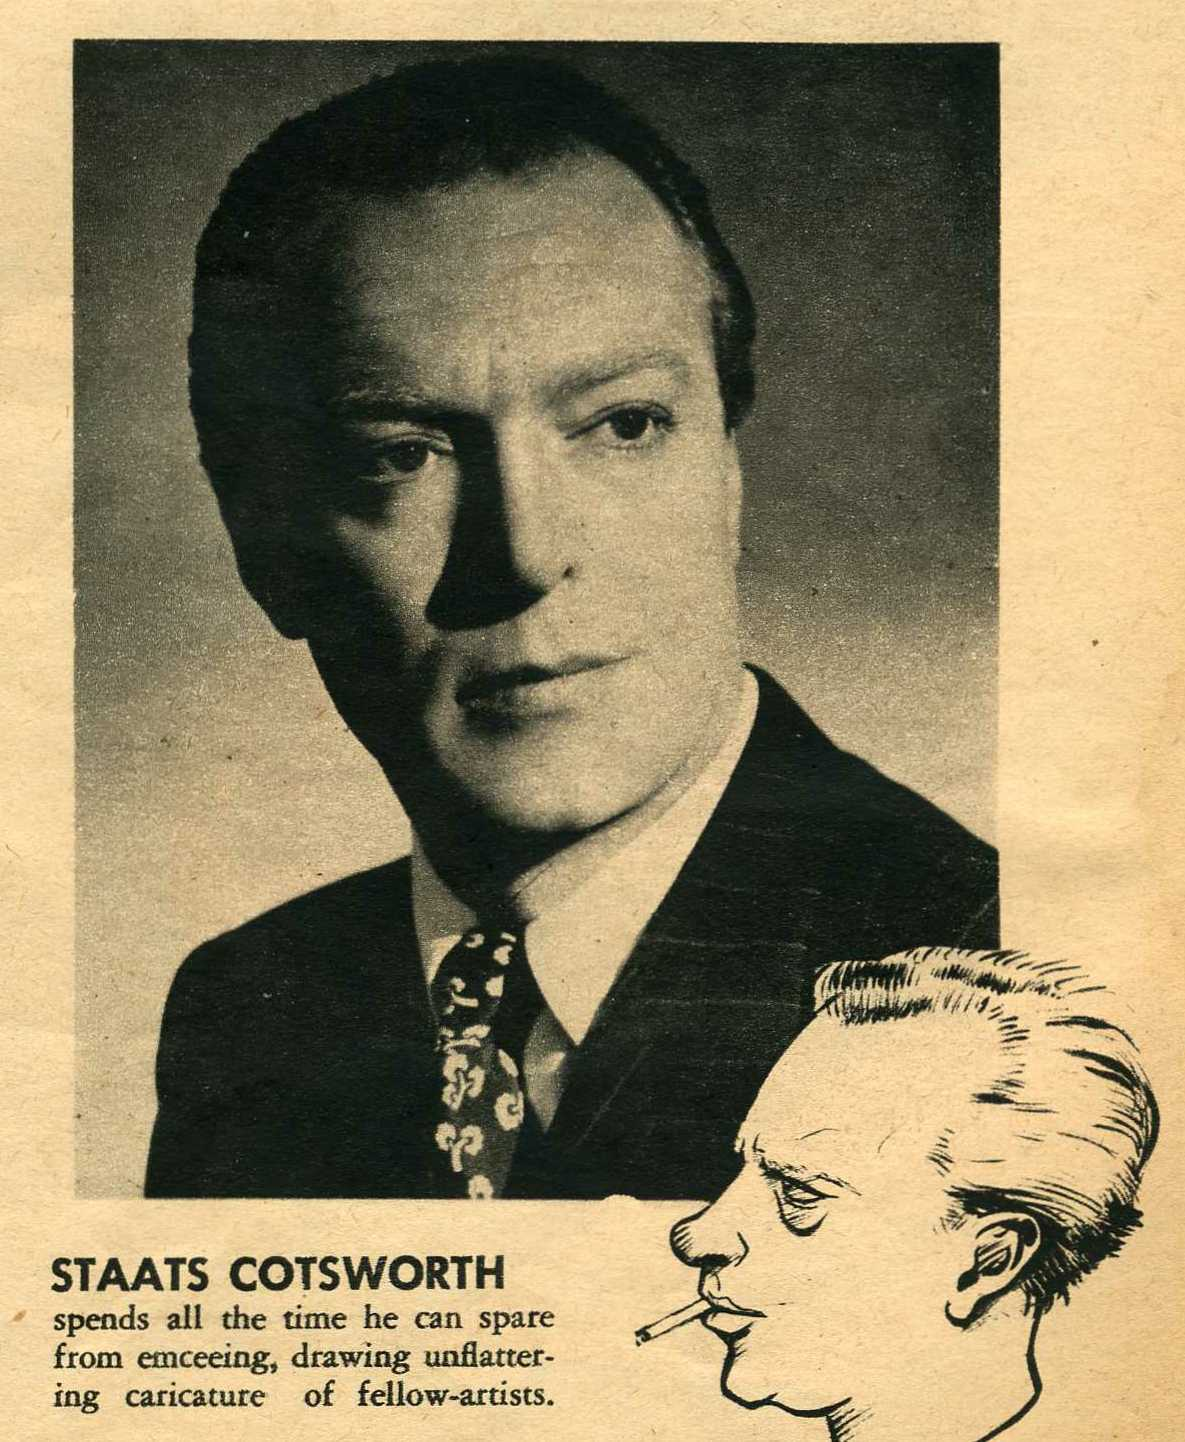 Staats Cotsworth Net Worth